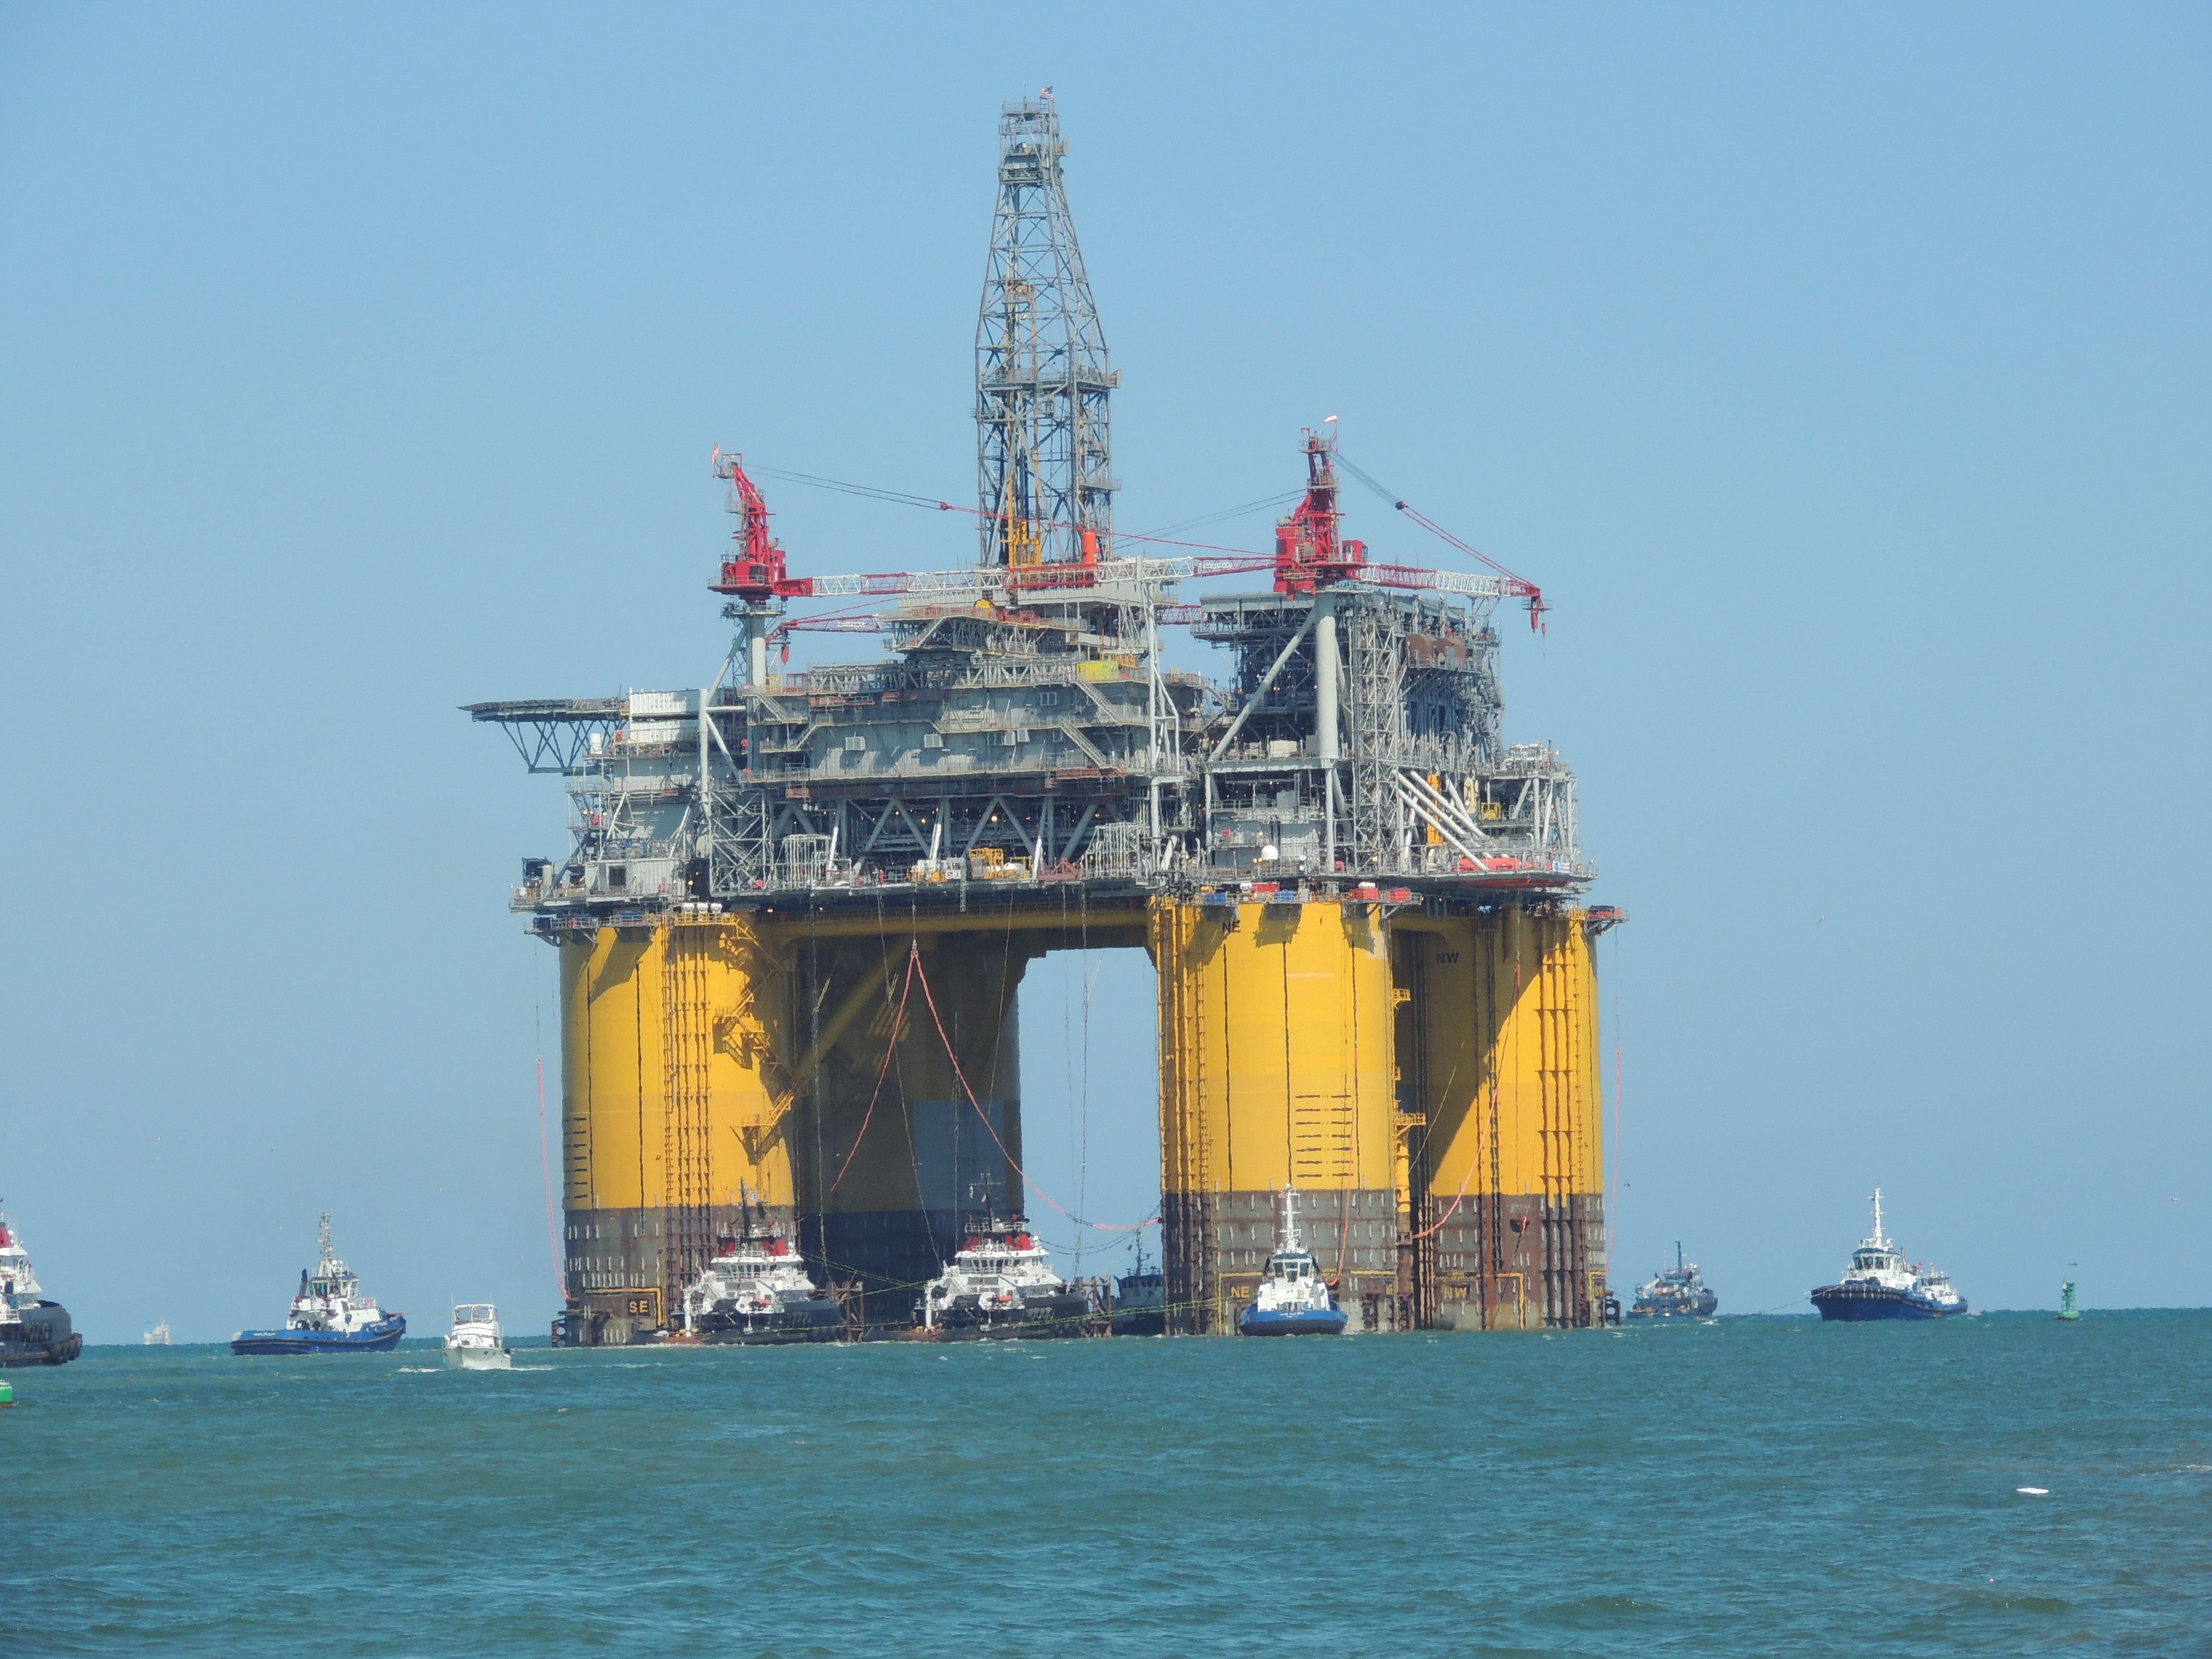 Shell Olympus Offshore Rig Leaving Jetties In Port Aransas